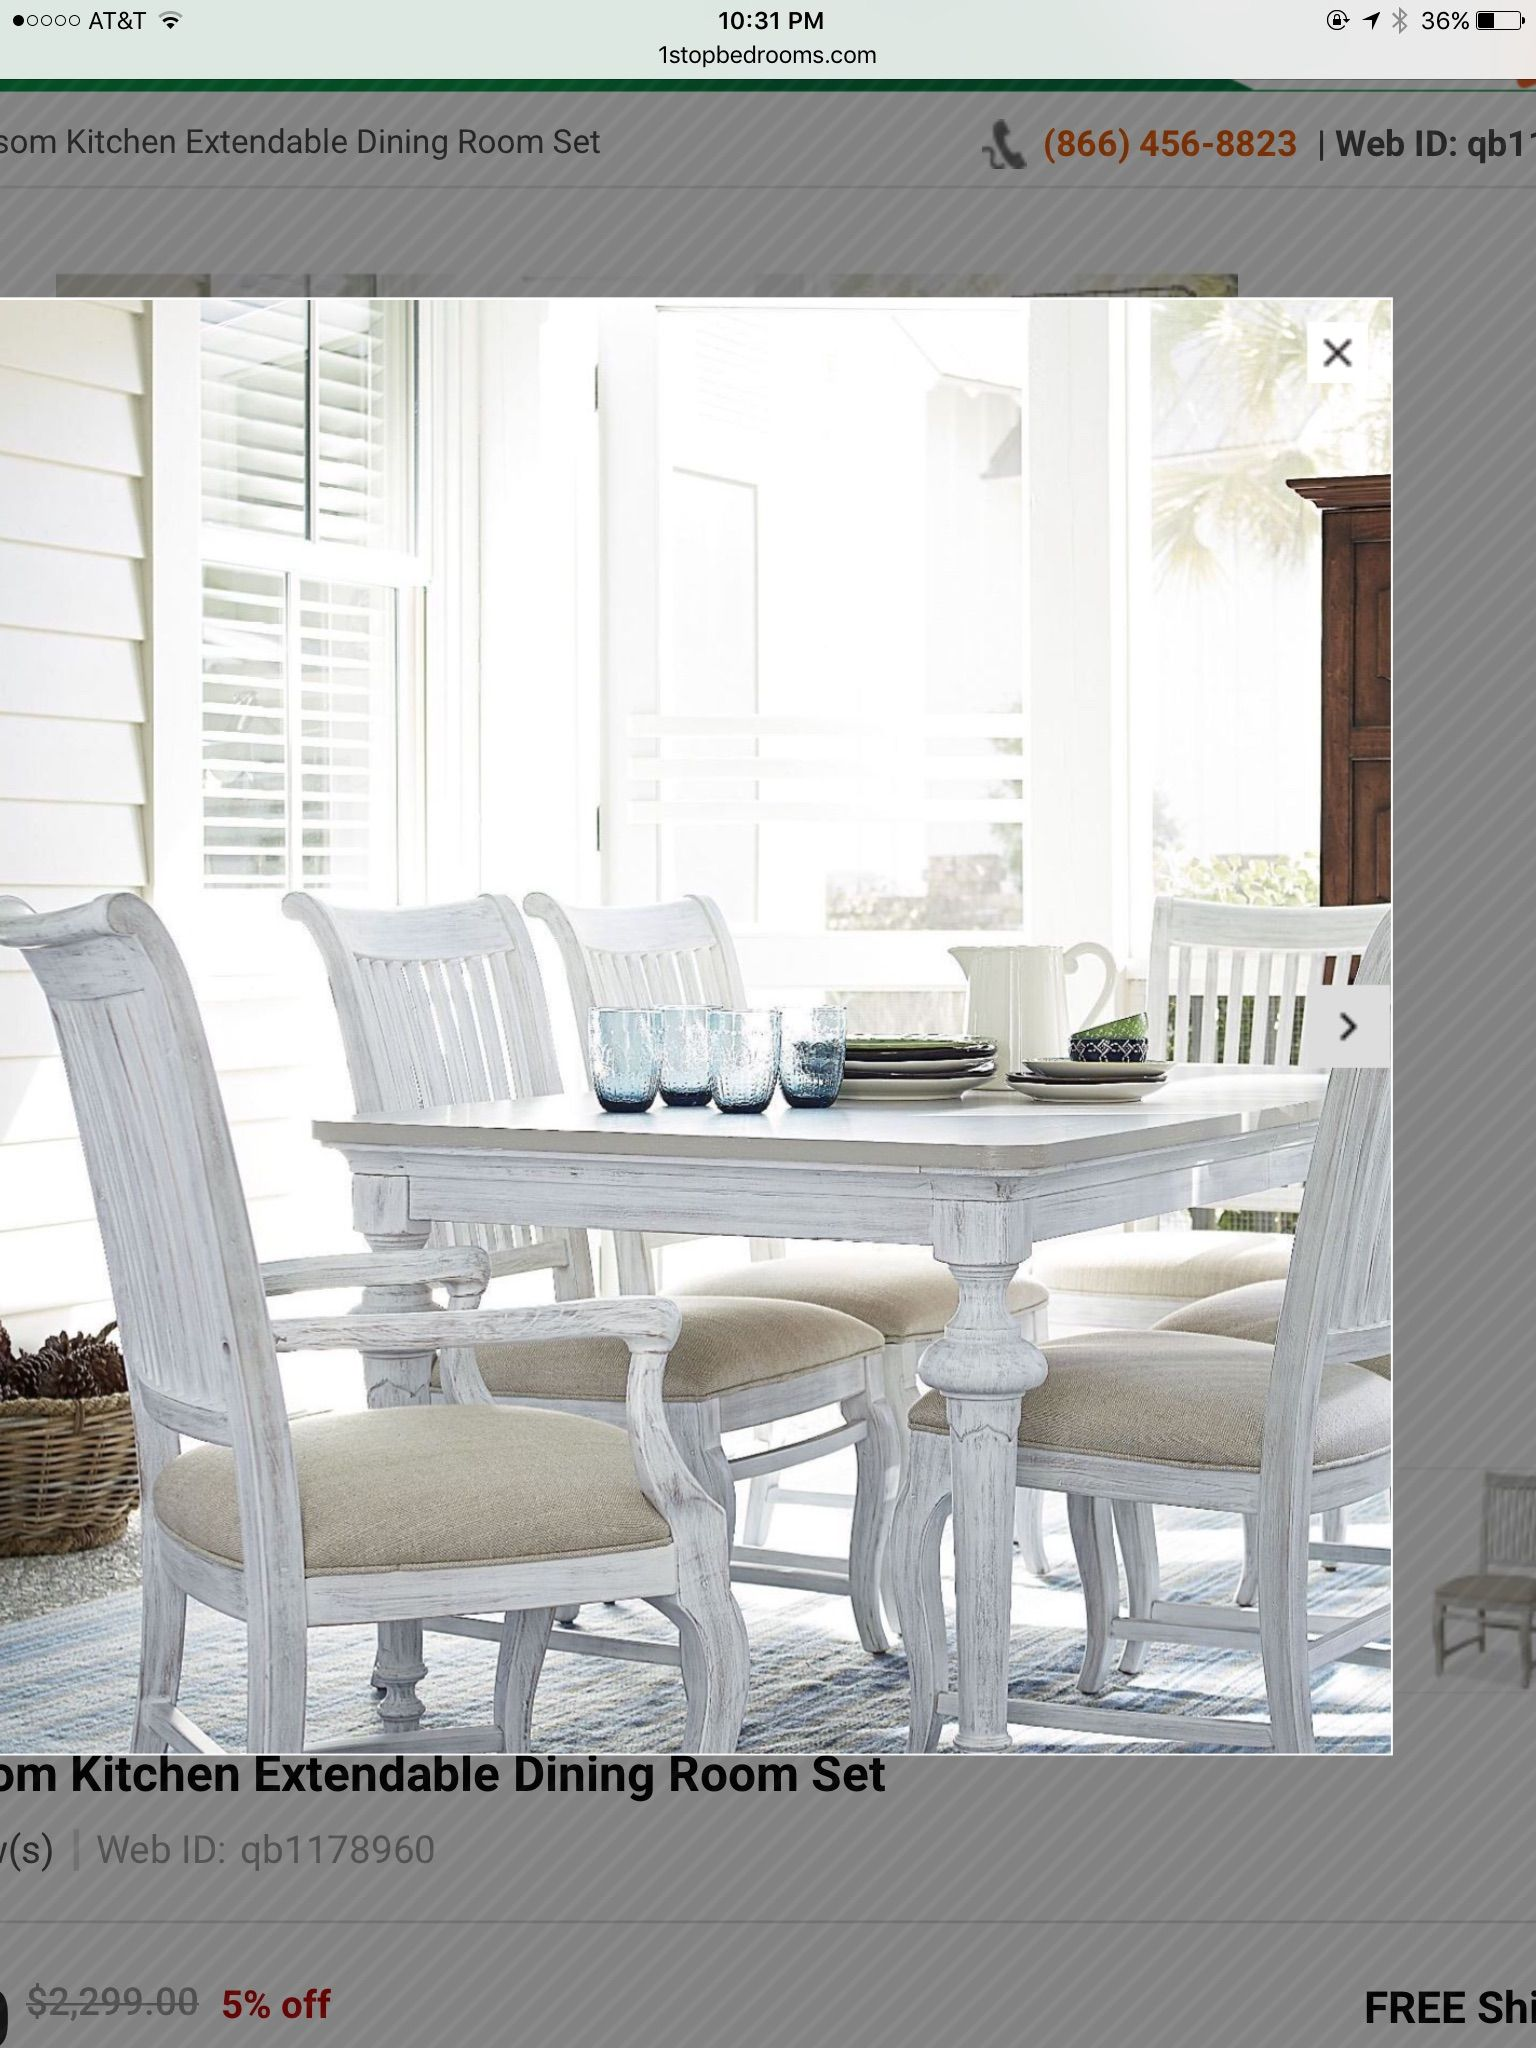 Pin by Kathy Pershall on Dining table and light | Pinterest